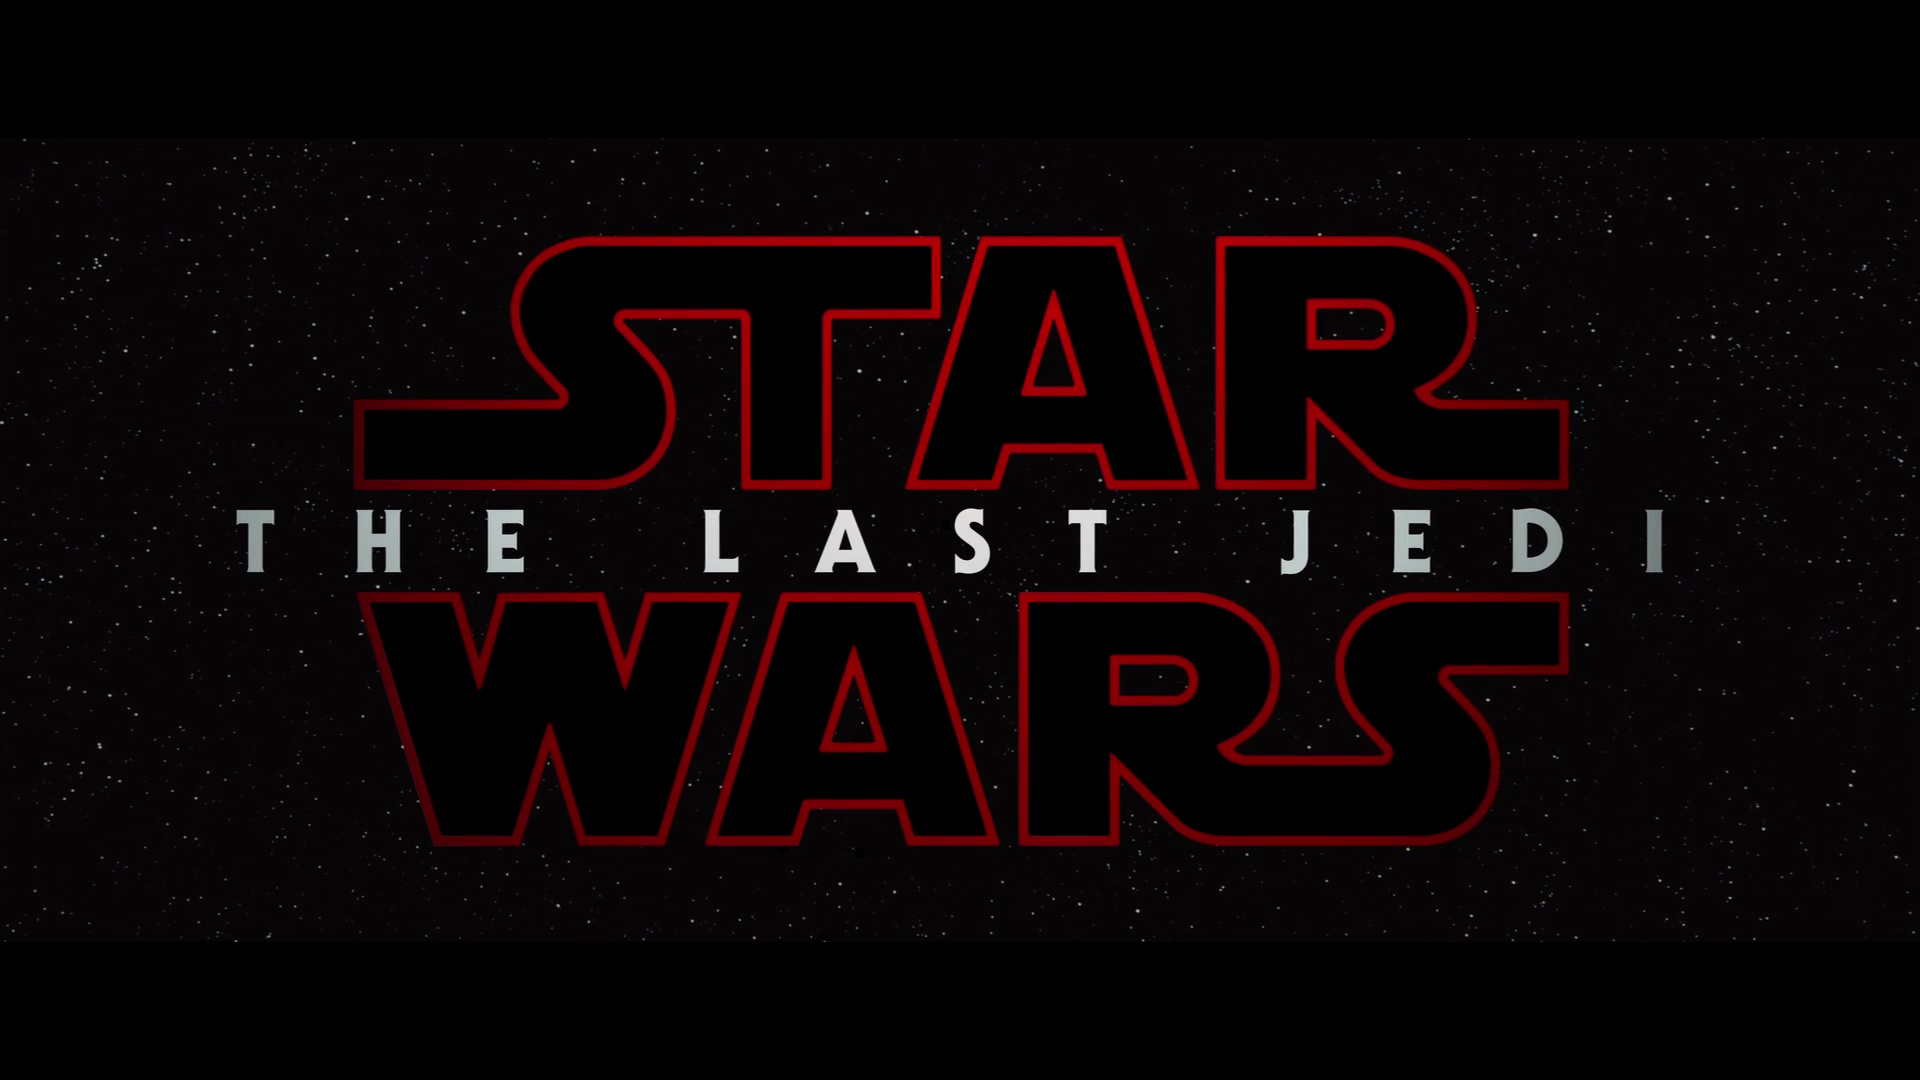 Episode 8: The Last Jedi Teaser Trailer